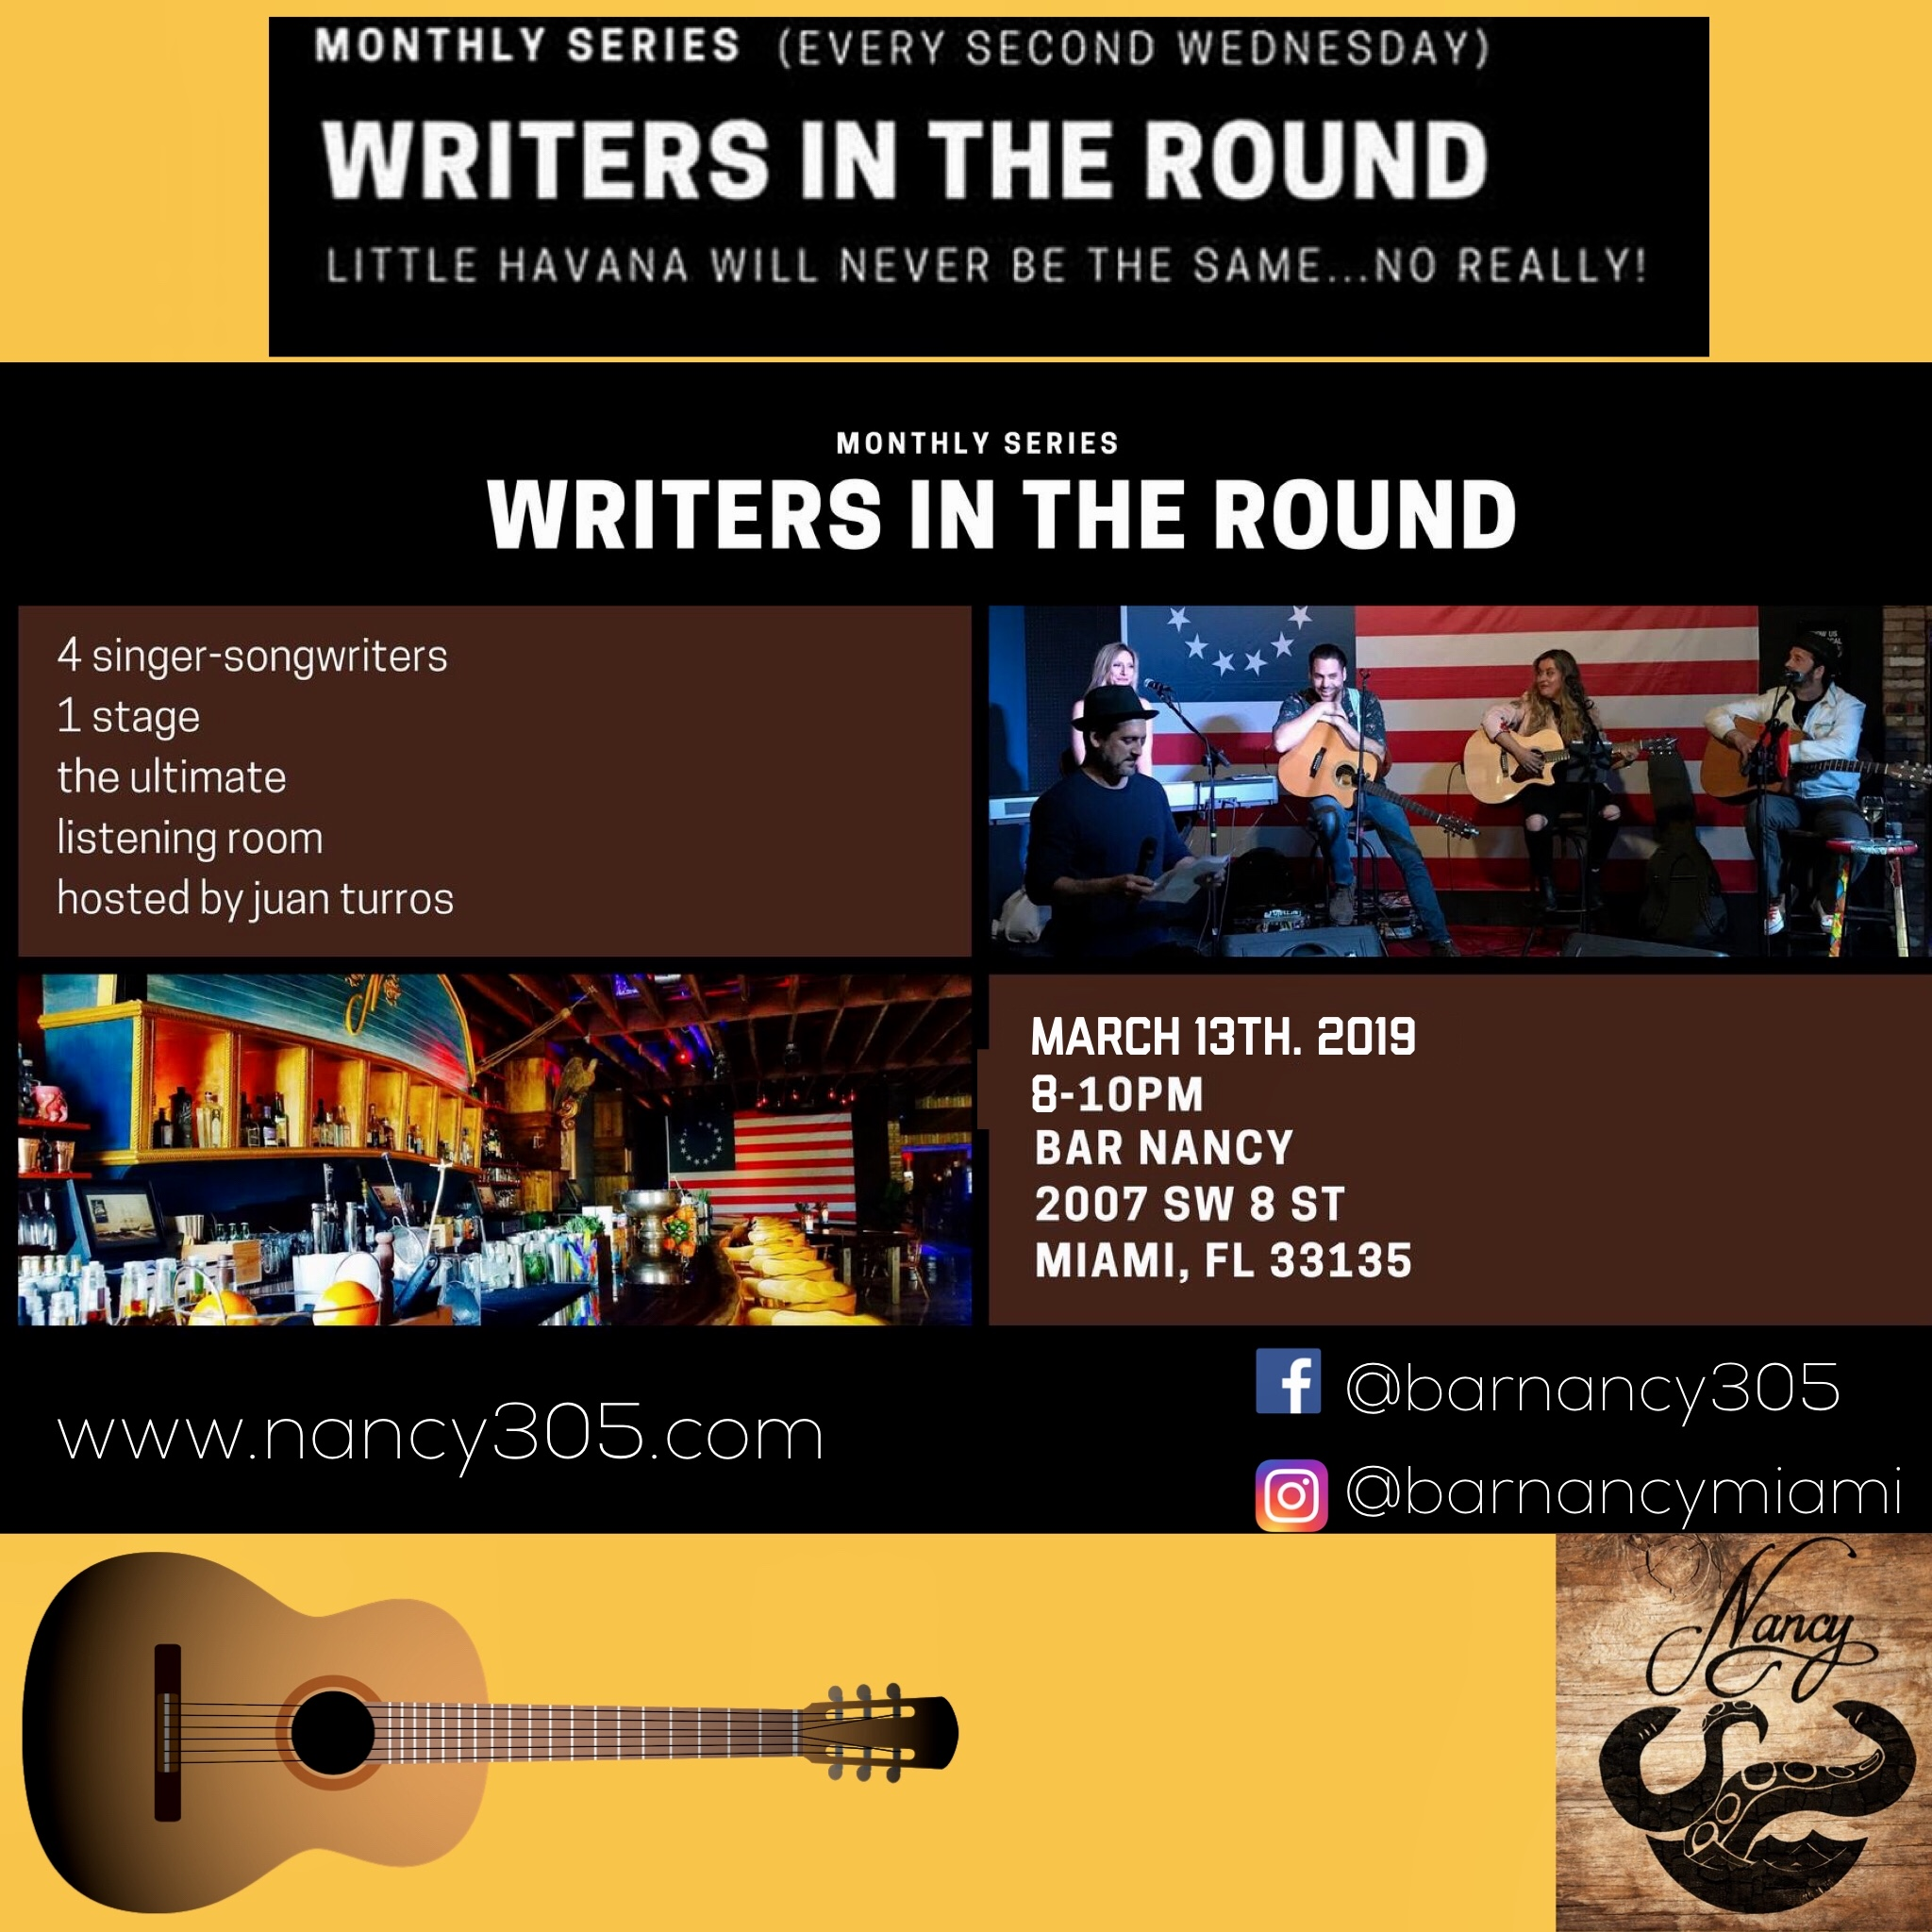 WRITERS IN THE ROUND @ BAR NANCY - HOSTED BY JUAN TURROS MARCH 13TH - 8PM